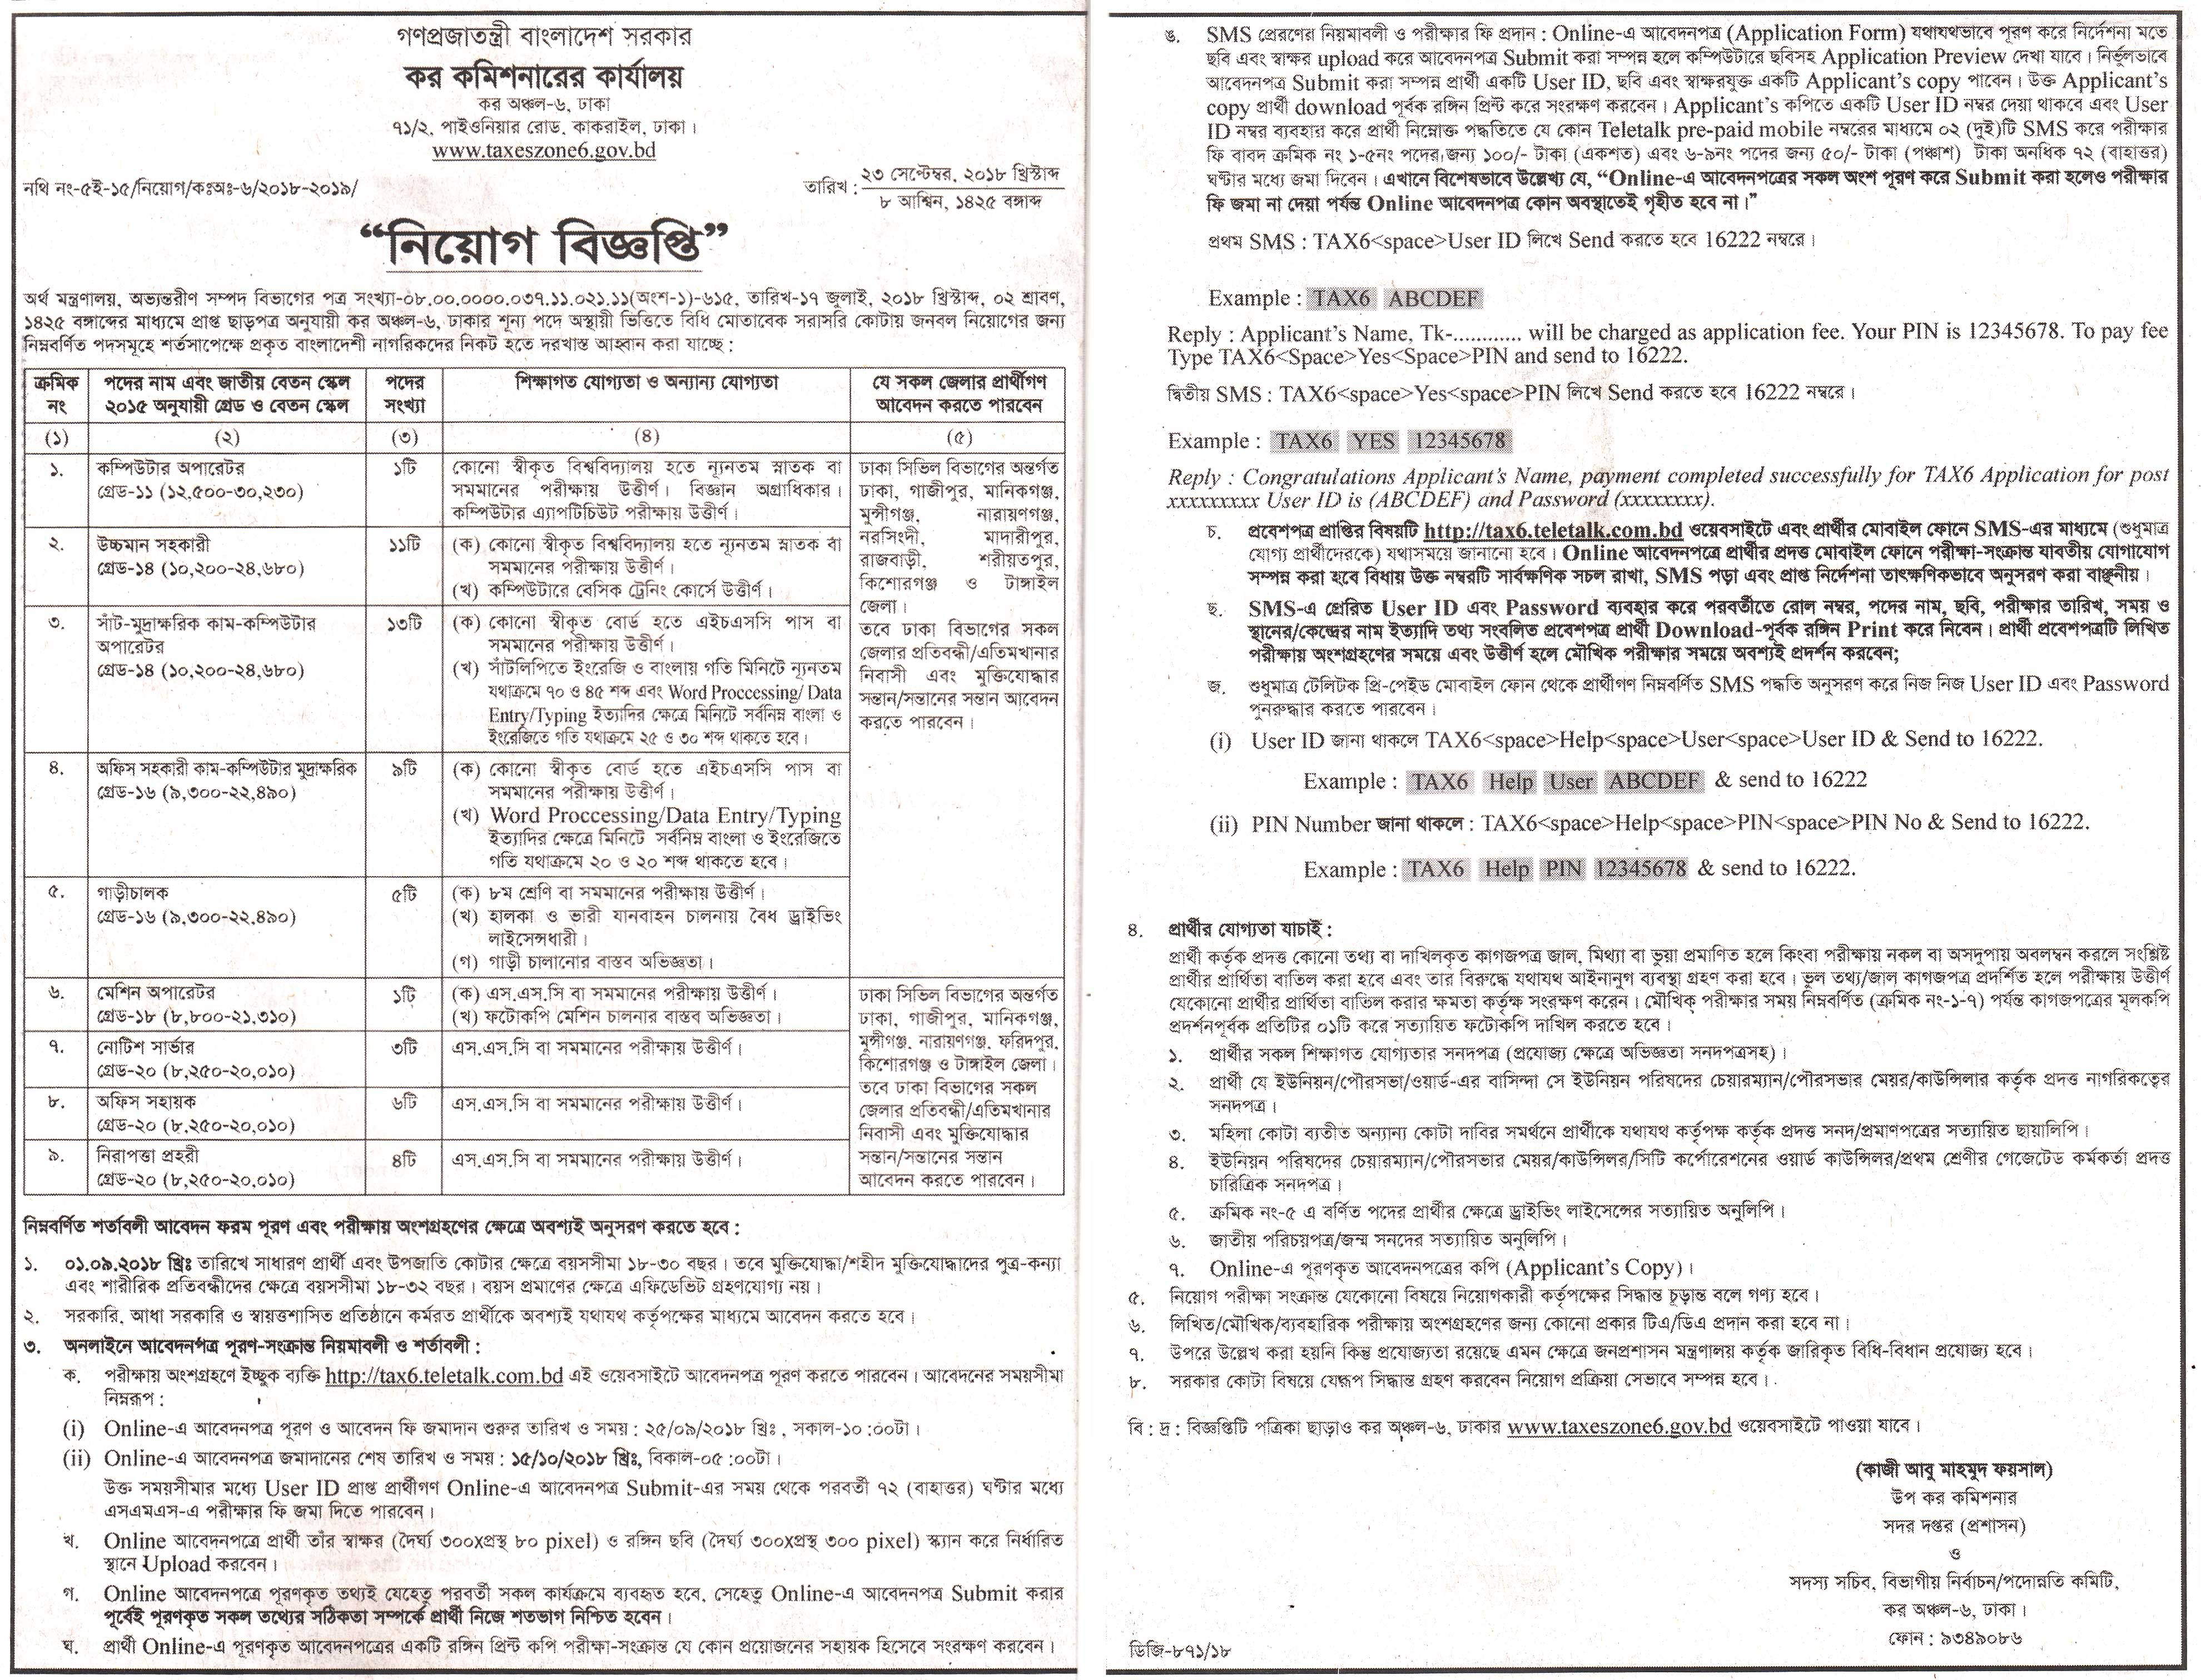 Tax Commissioner's Officer Jobs 23.09.2018 (With images